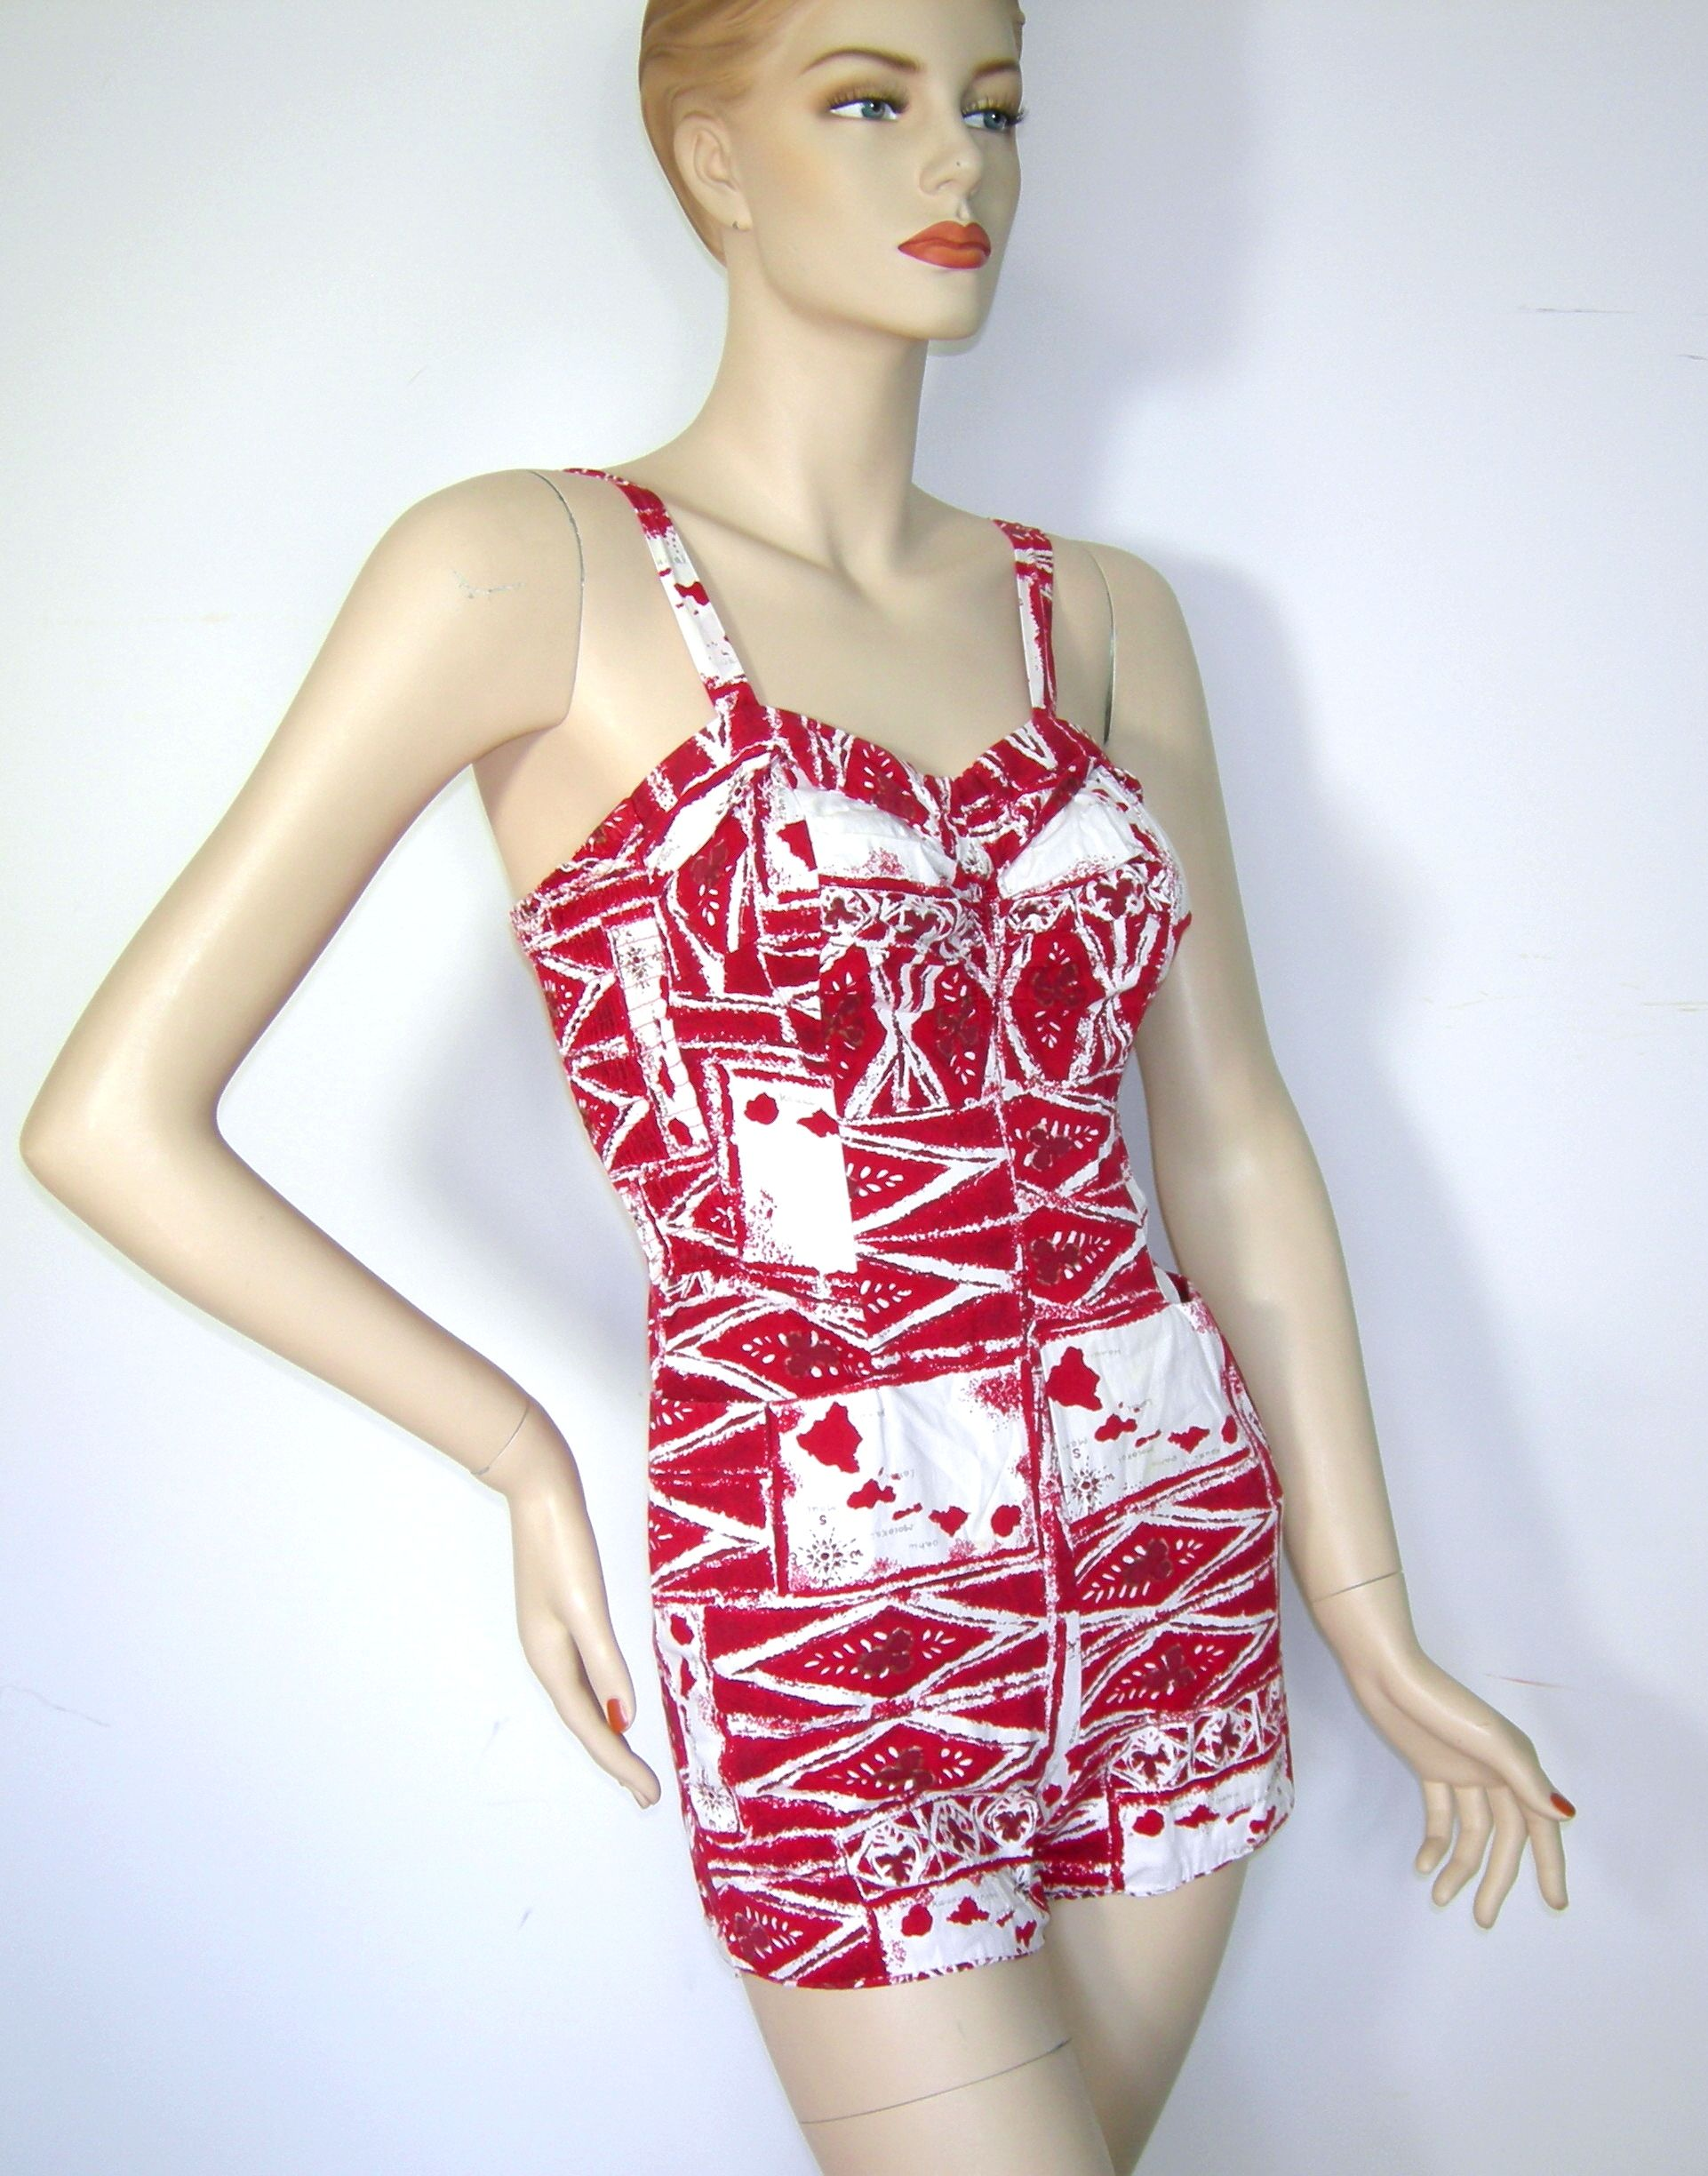 Vintage 50s Alfred Shaheen Romper Swimsuit Bathing Suit